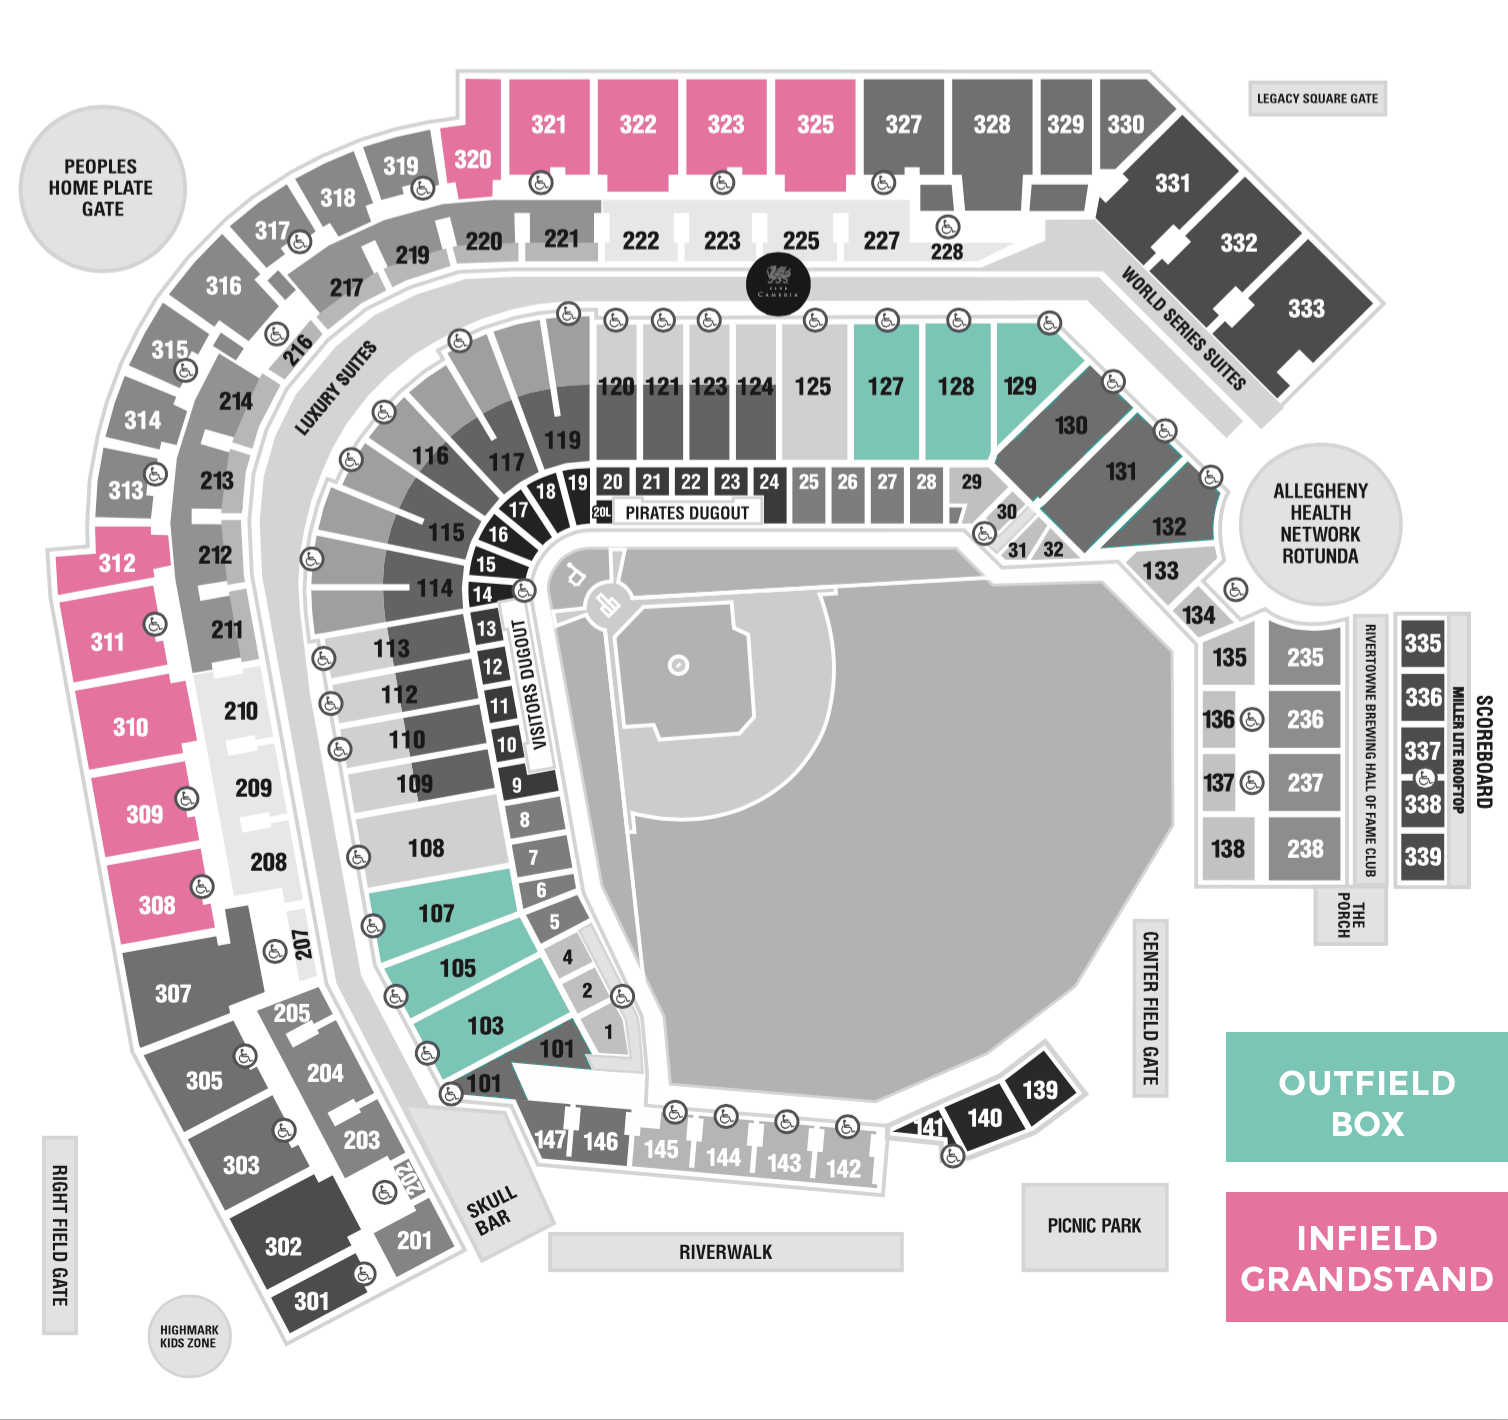 Pnc park pittsburgh tickets schedule seating charts goldstar